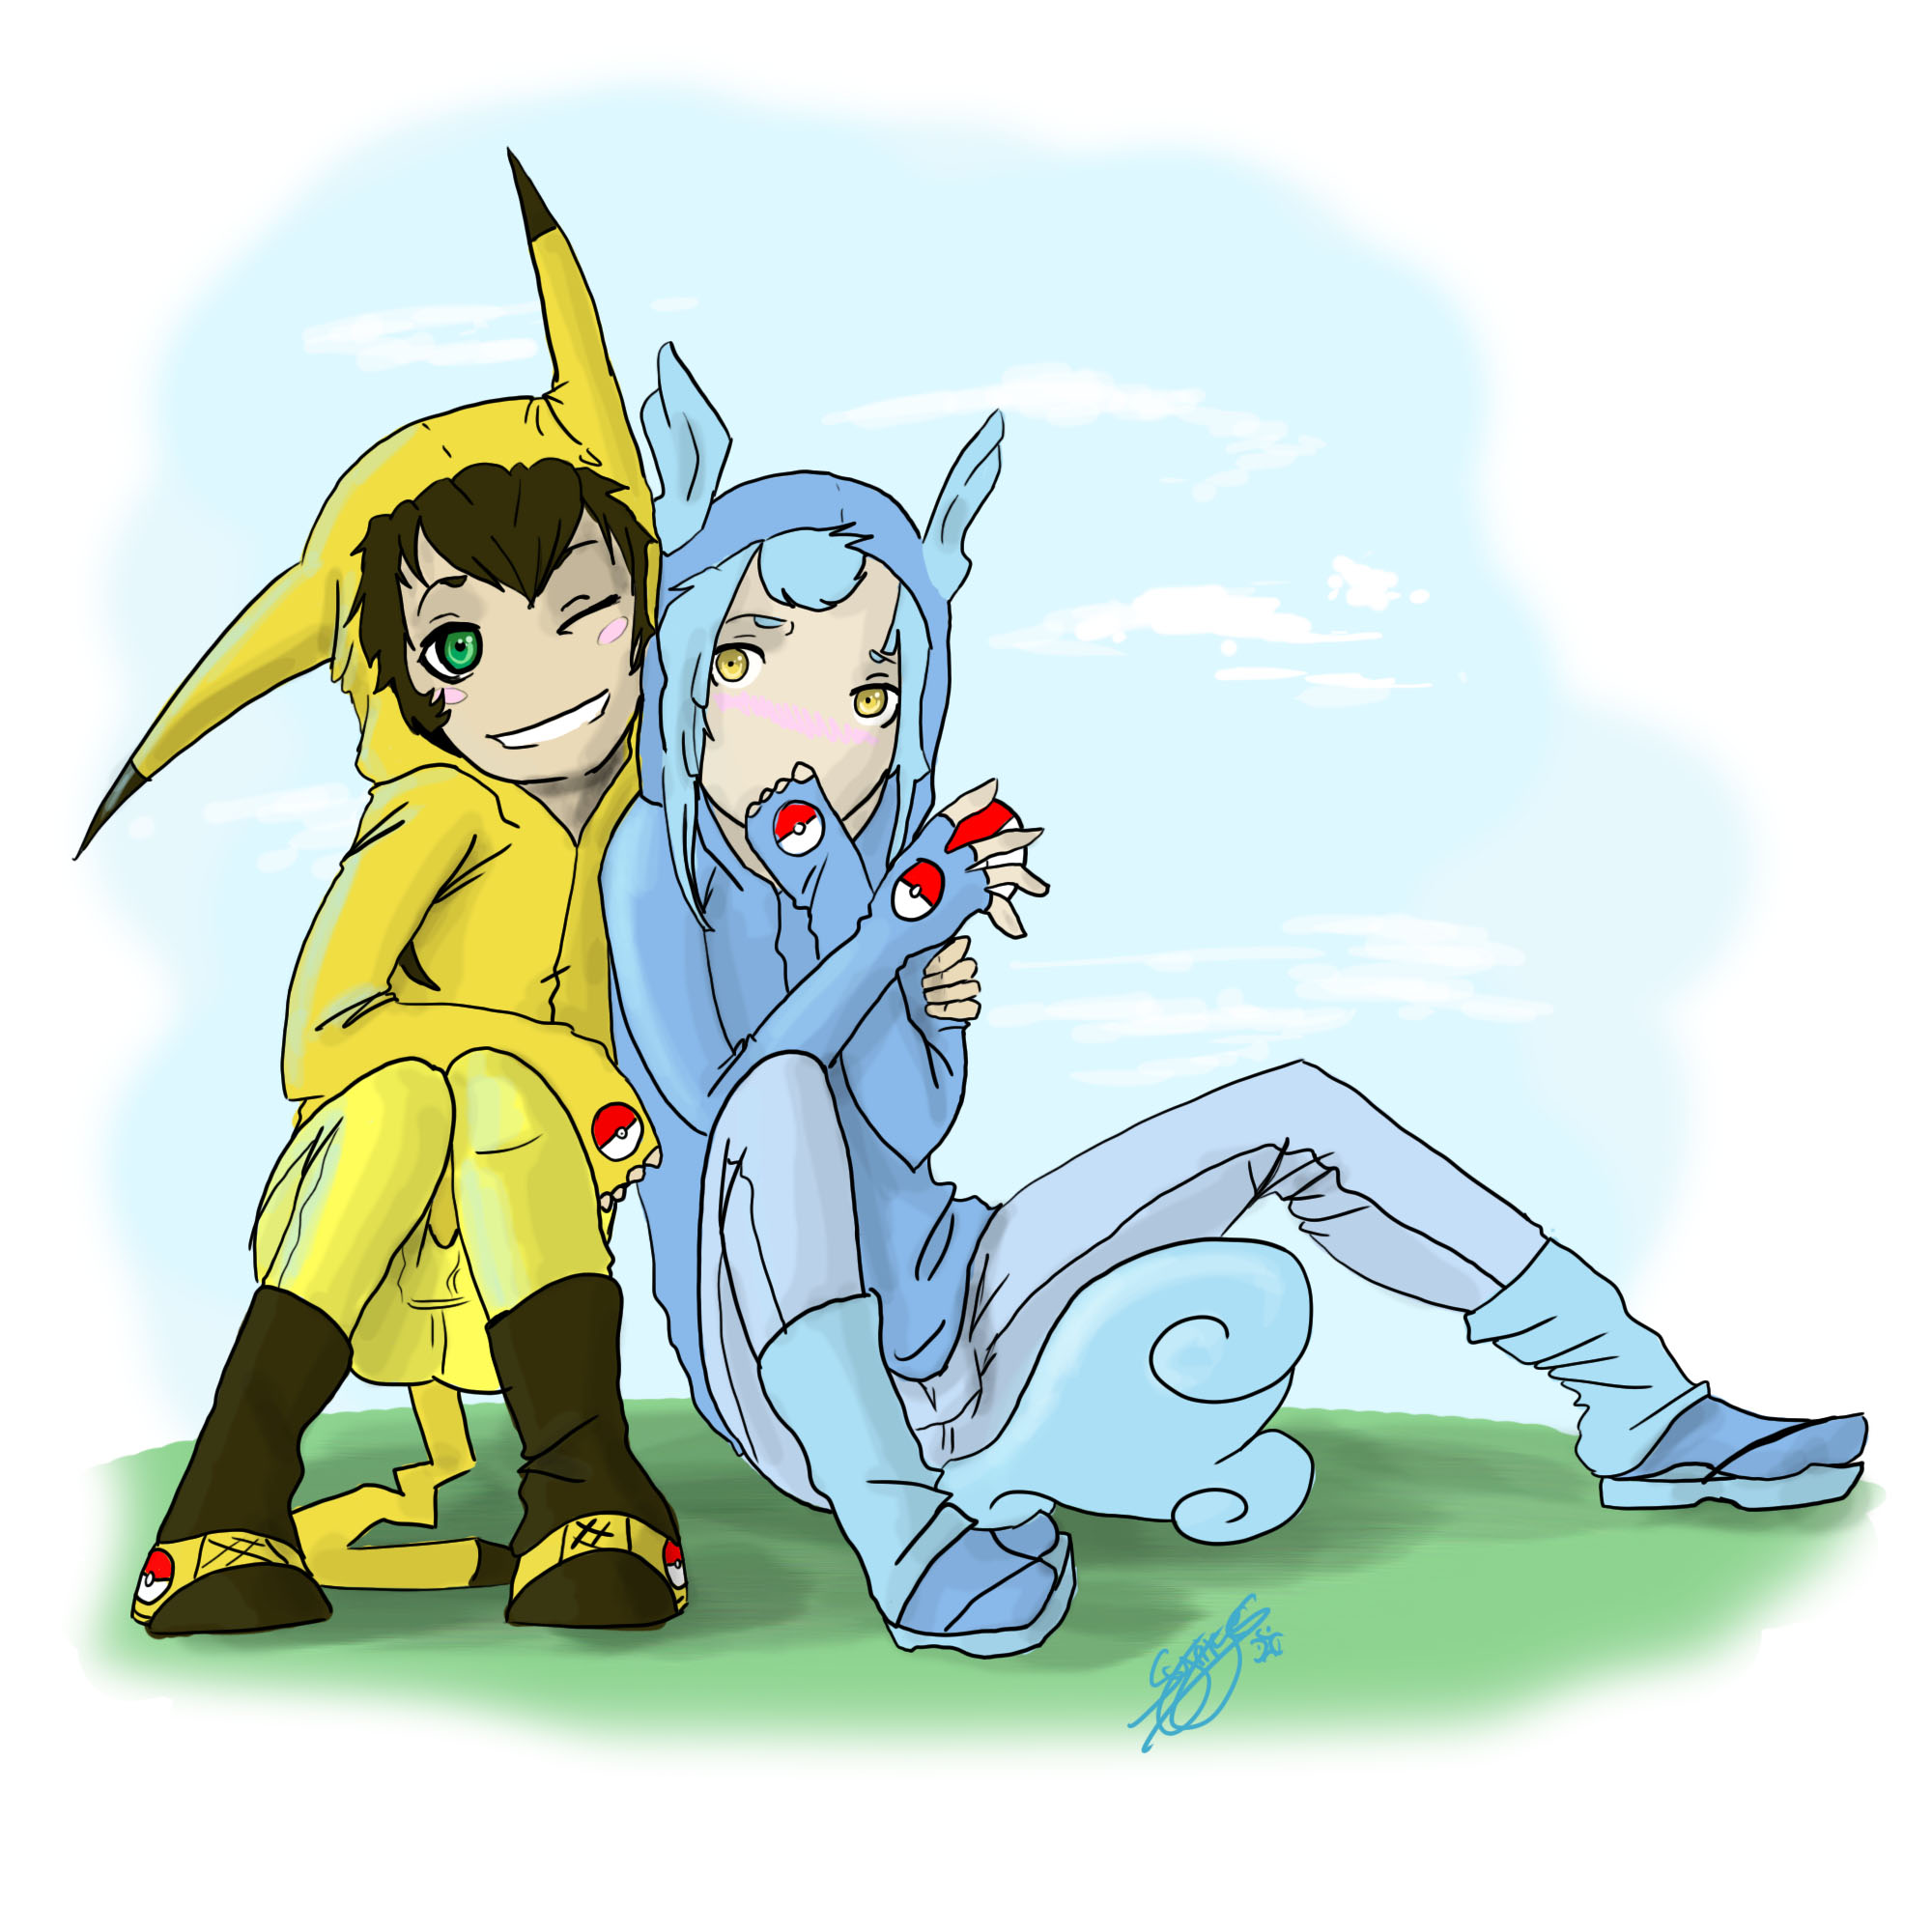 Pikachu and Wartortle